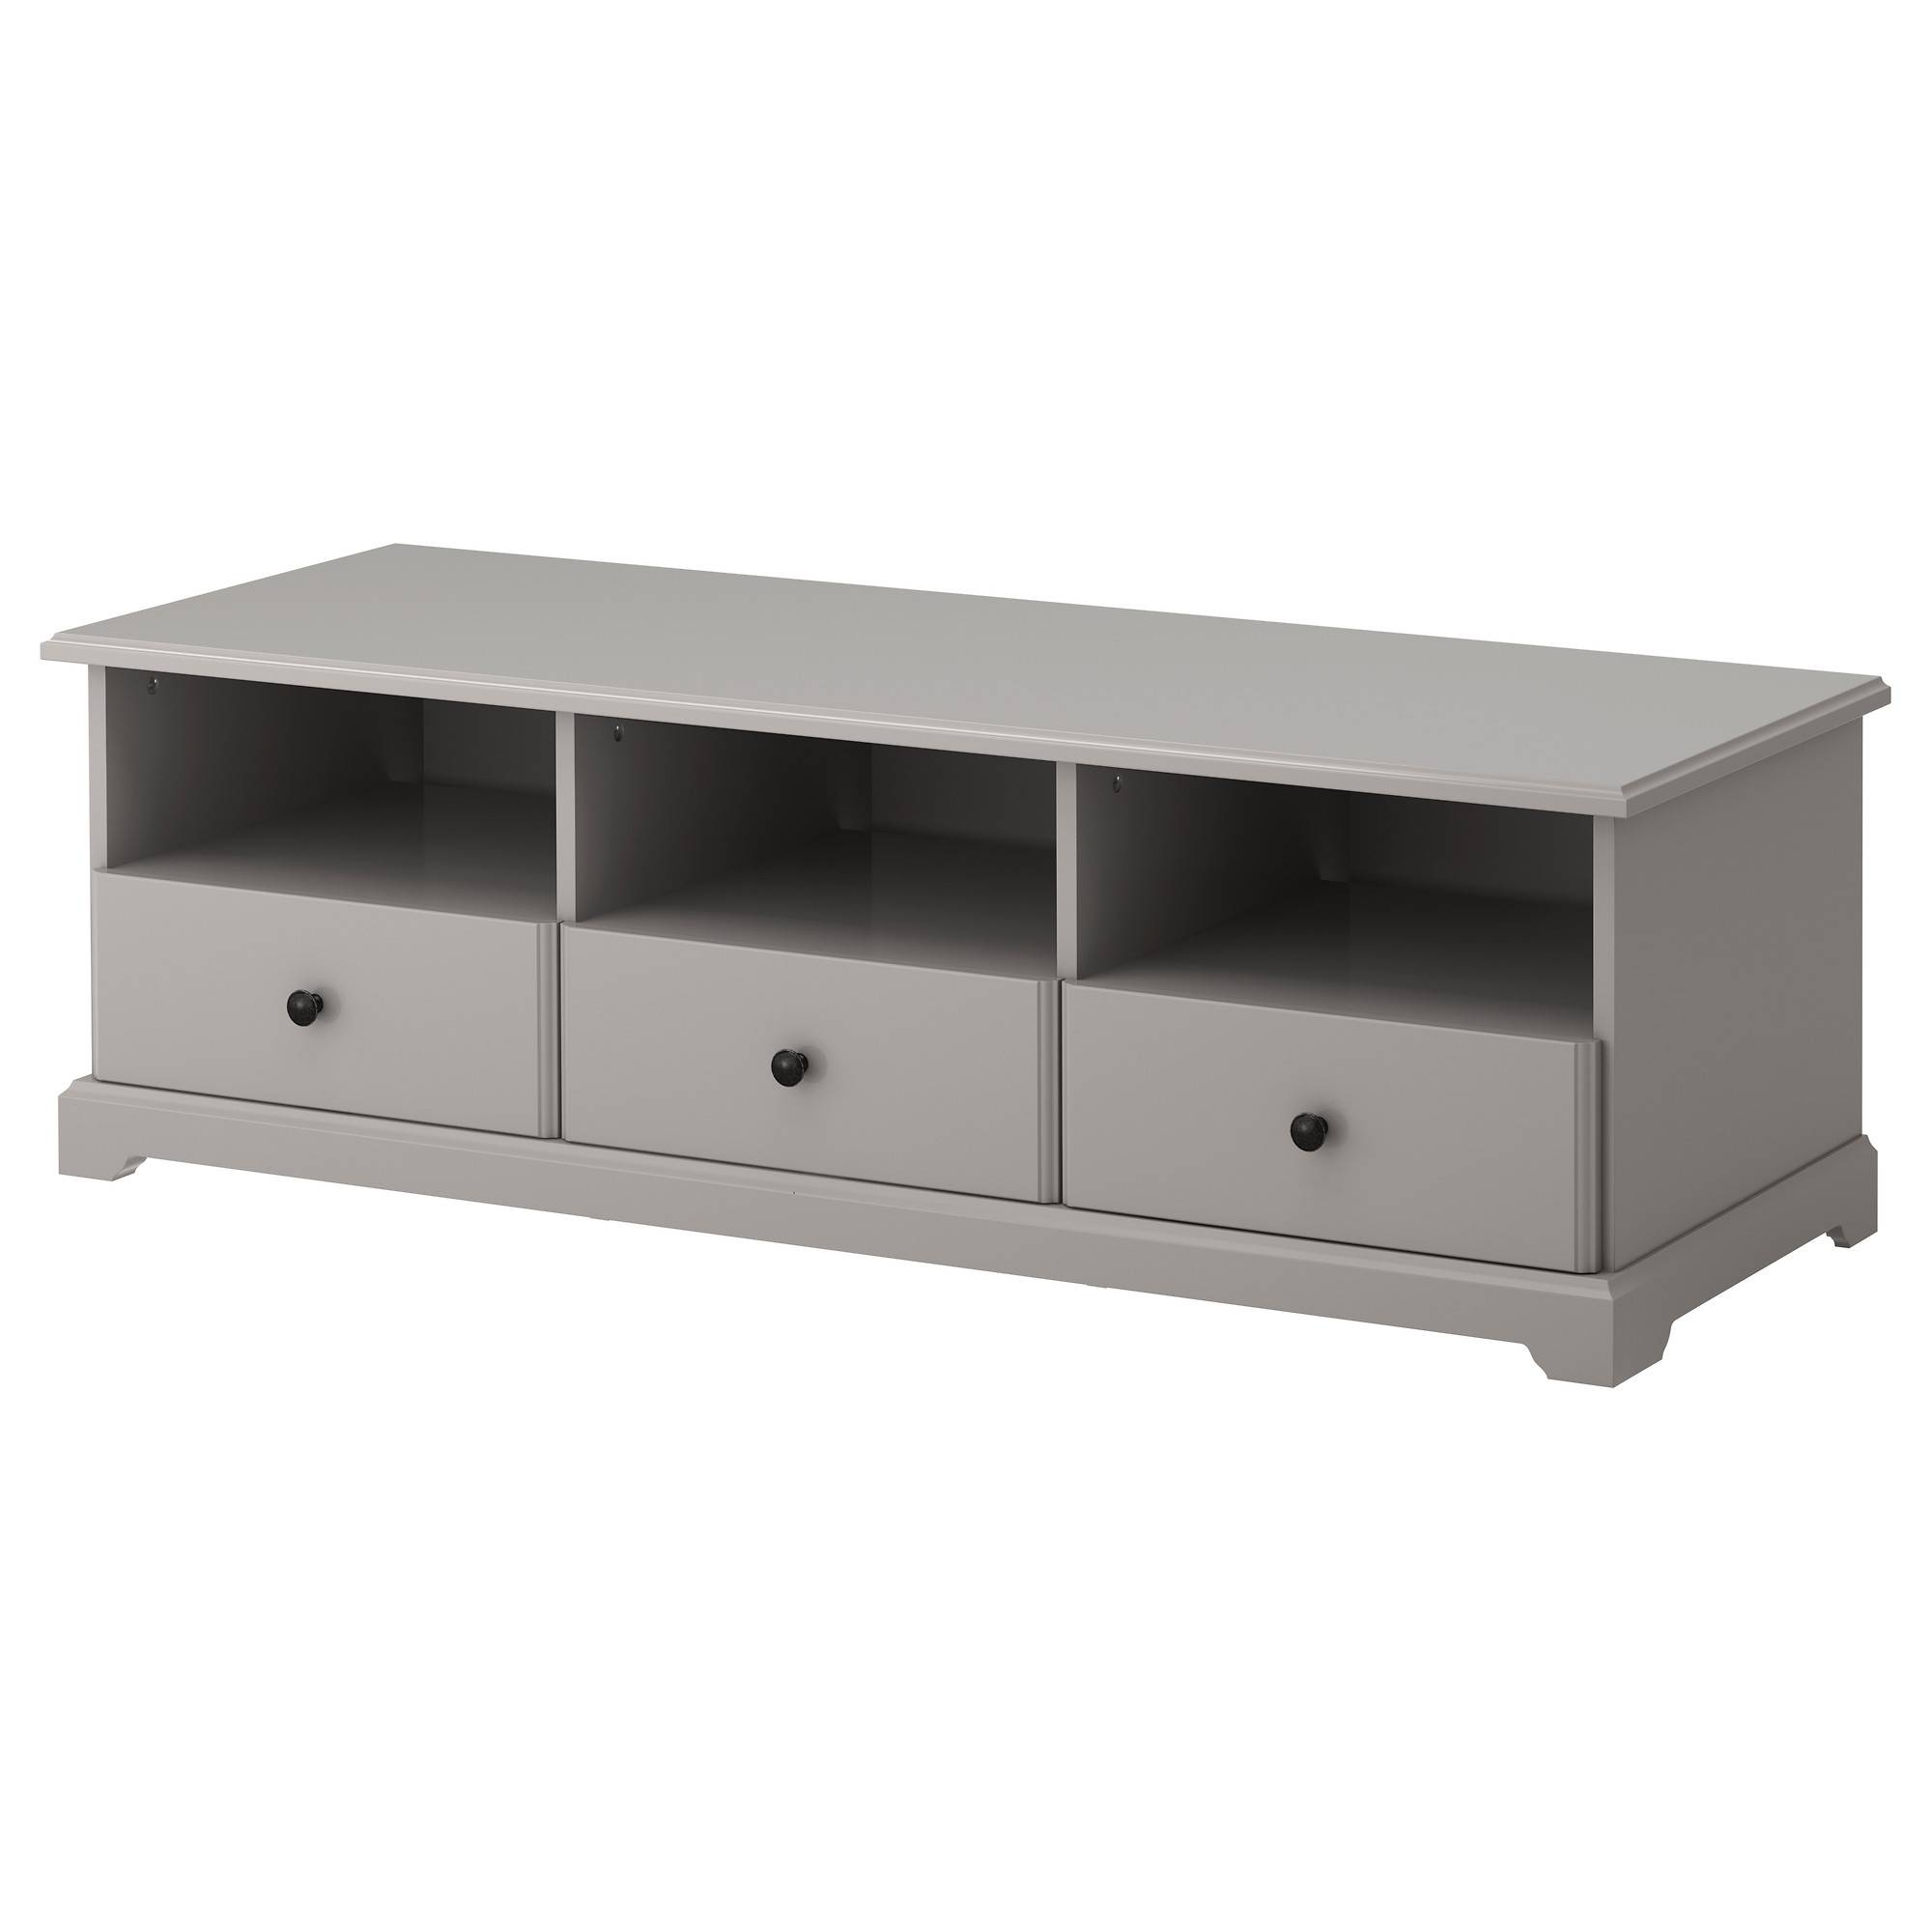 Tv Stands - Ikea intended for 24 Inch Deep Tv Stands (Image 11 of 15)